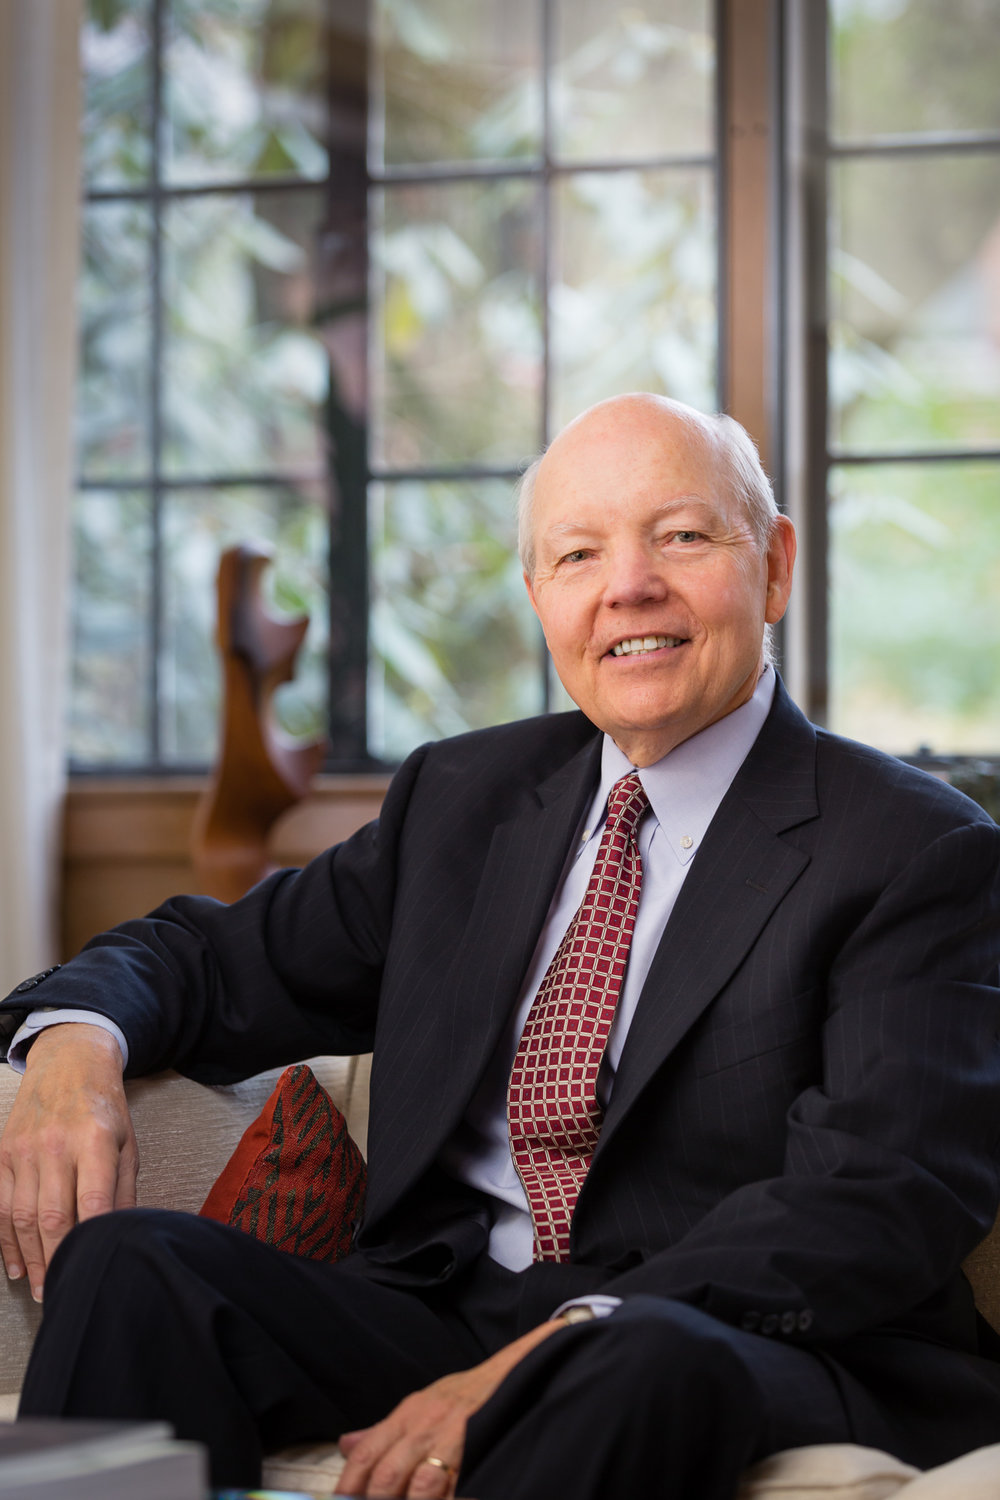 Commissioner of the IRS, John Koskinen, in his home in Washington, DC